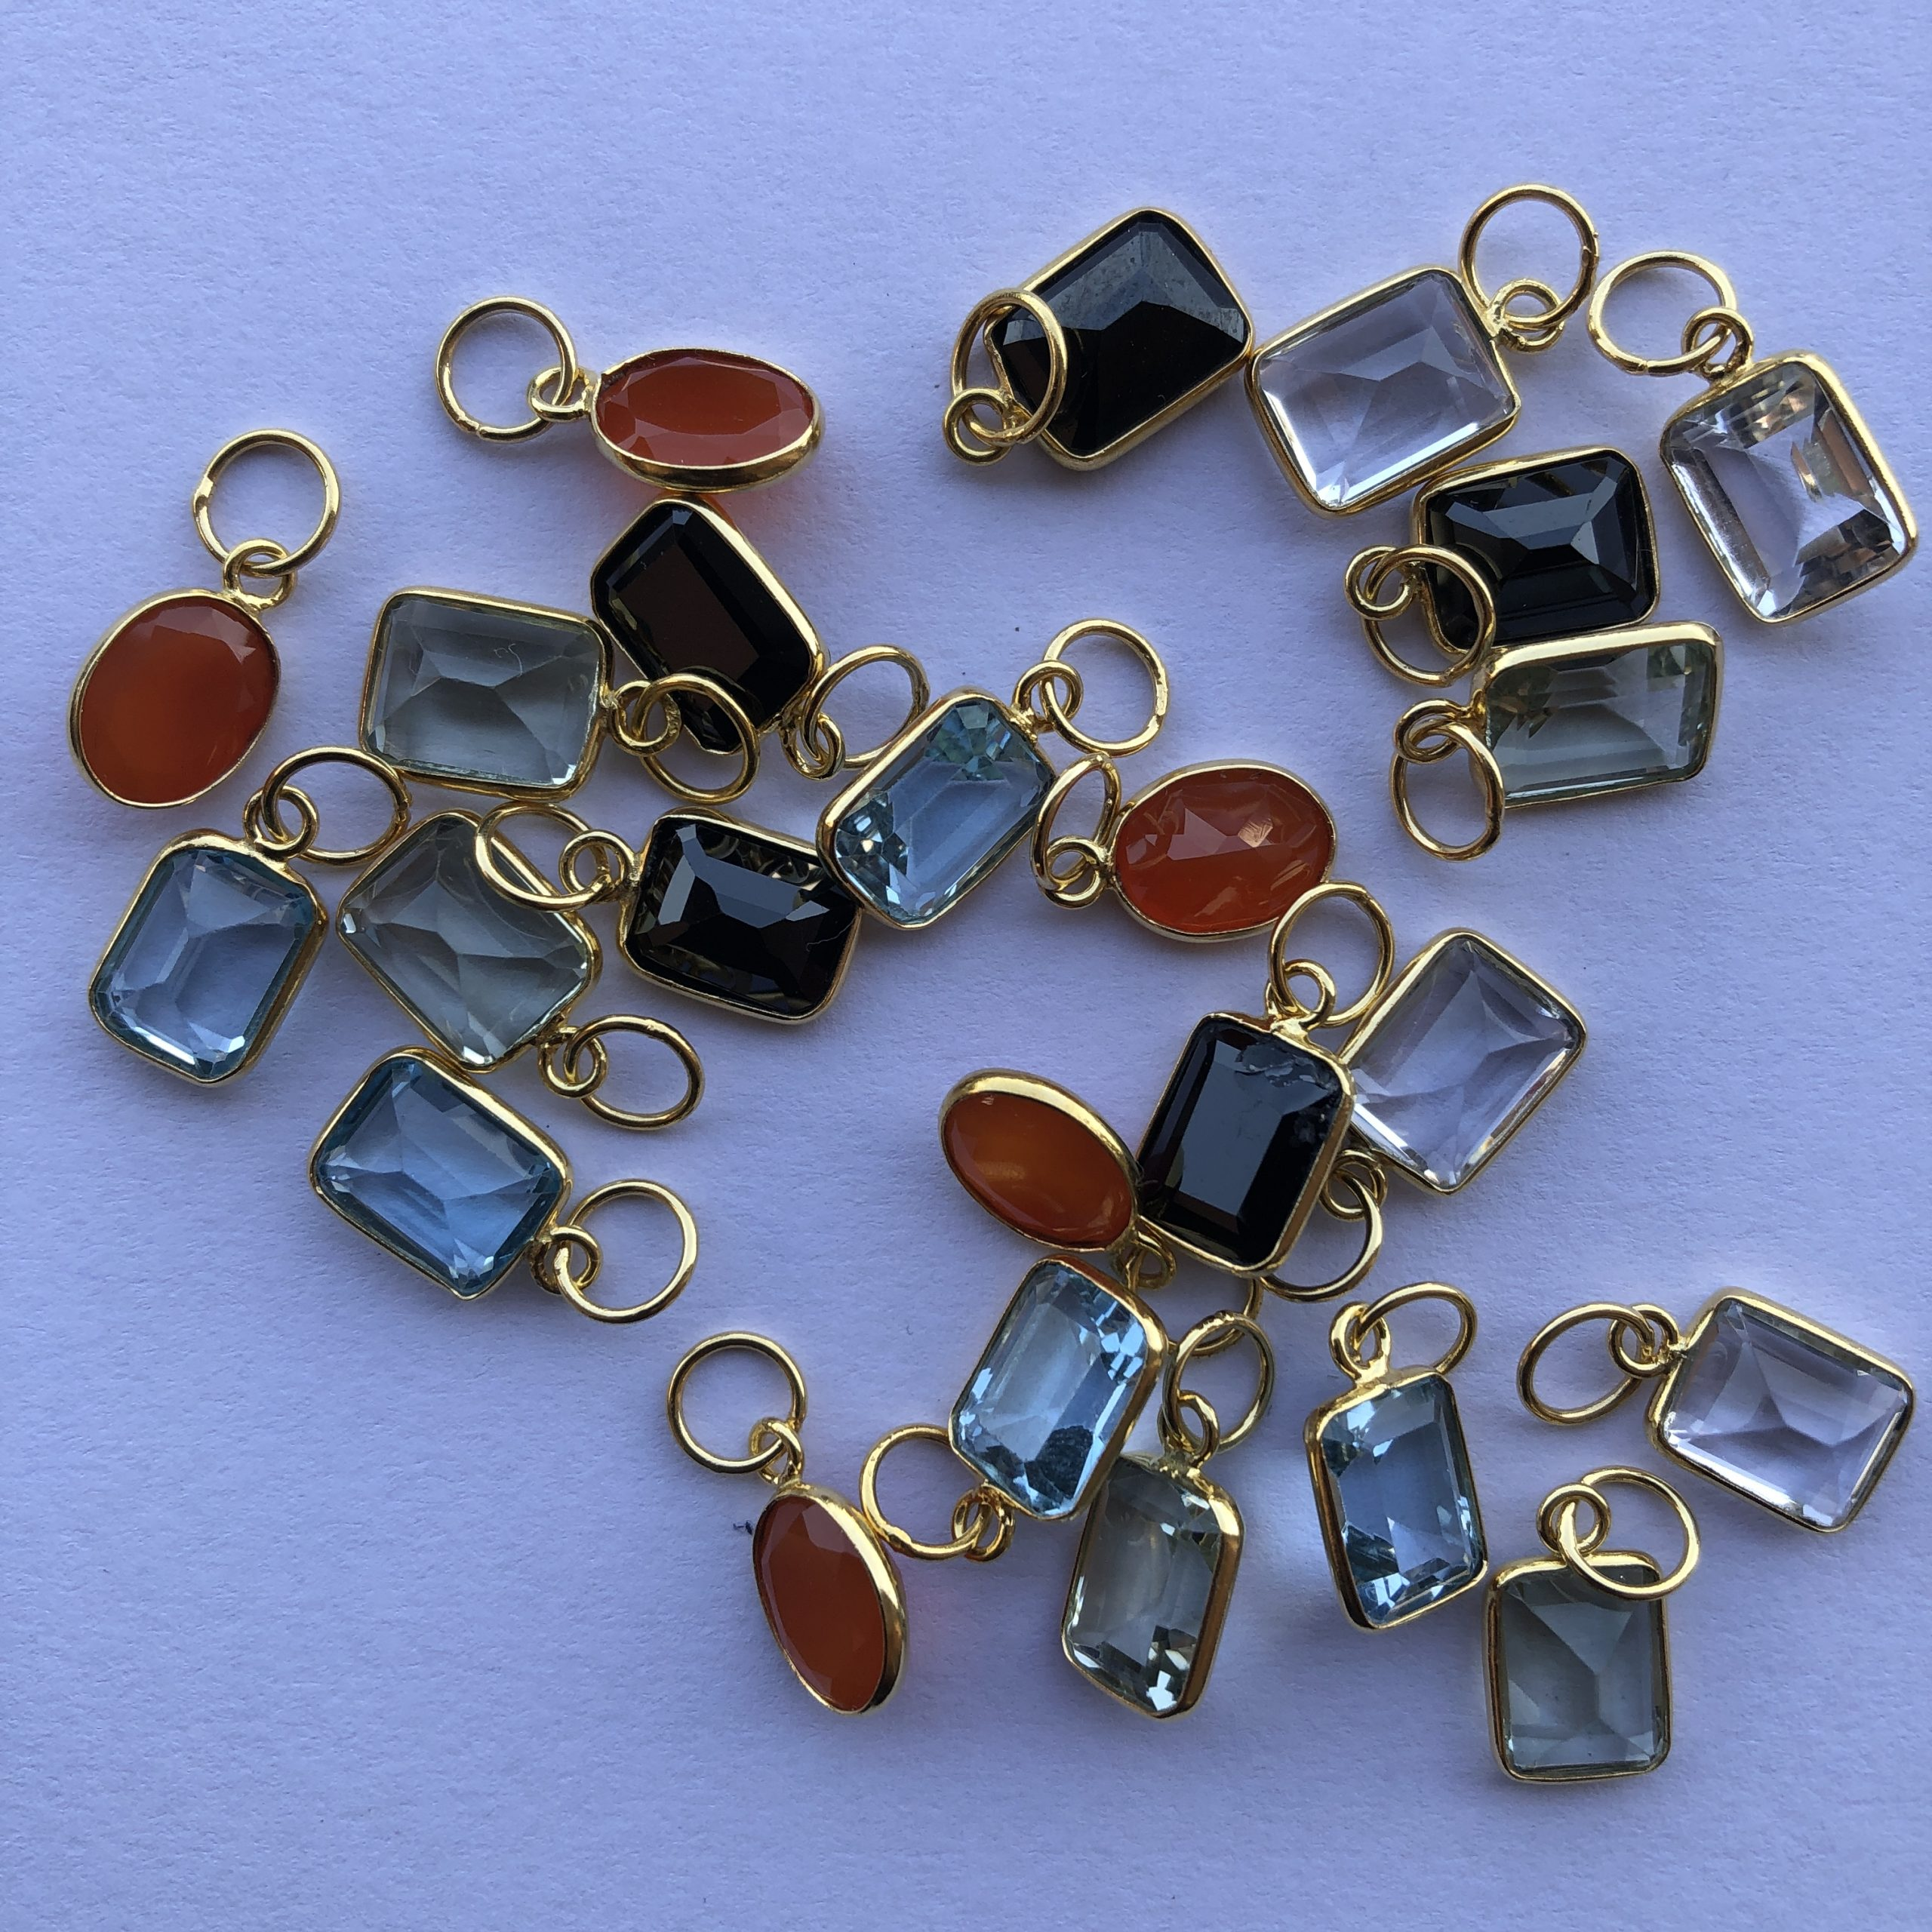 Shop 14k Solid Gold Gemstone Pendant & Charms - Get FREE SHIPPING